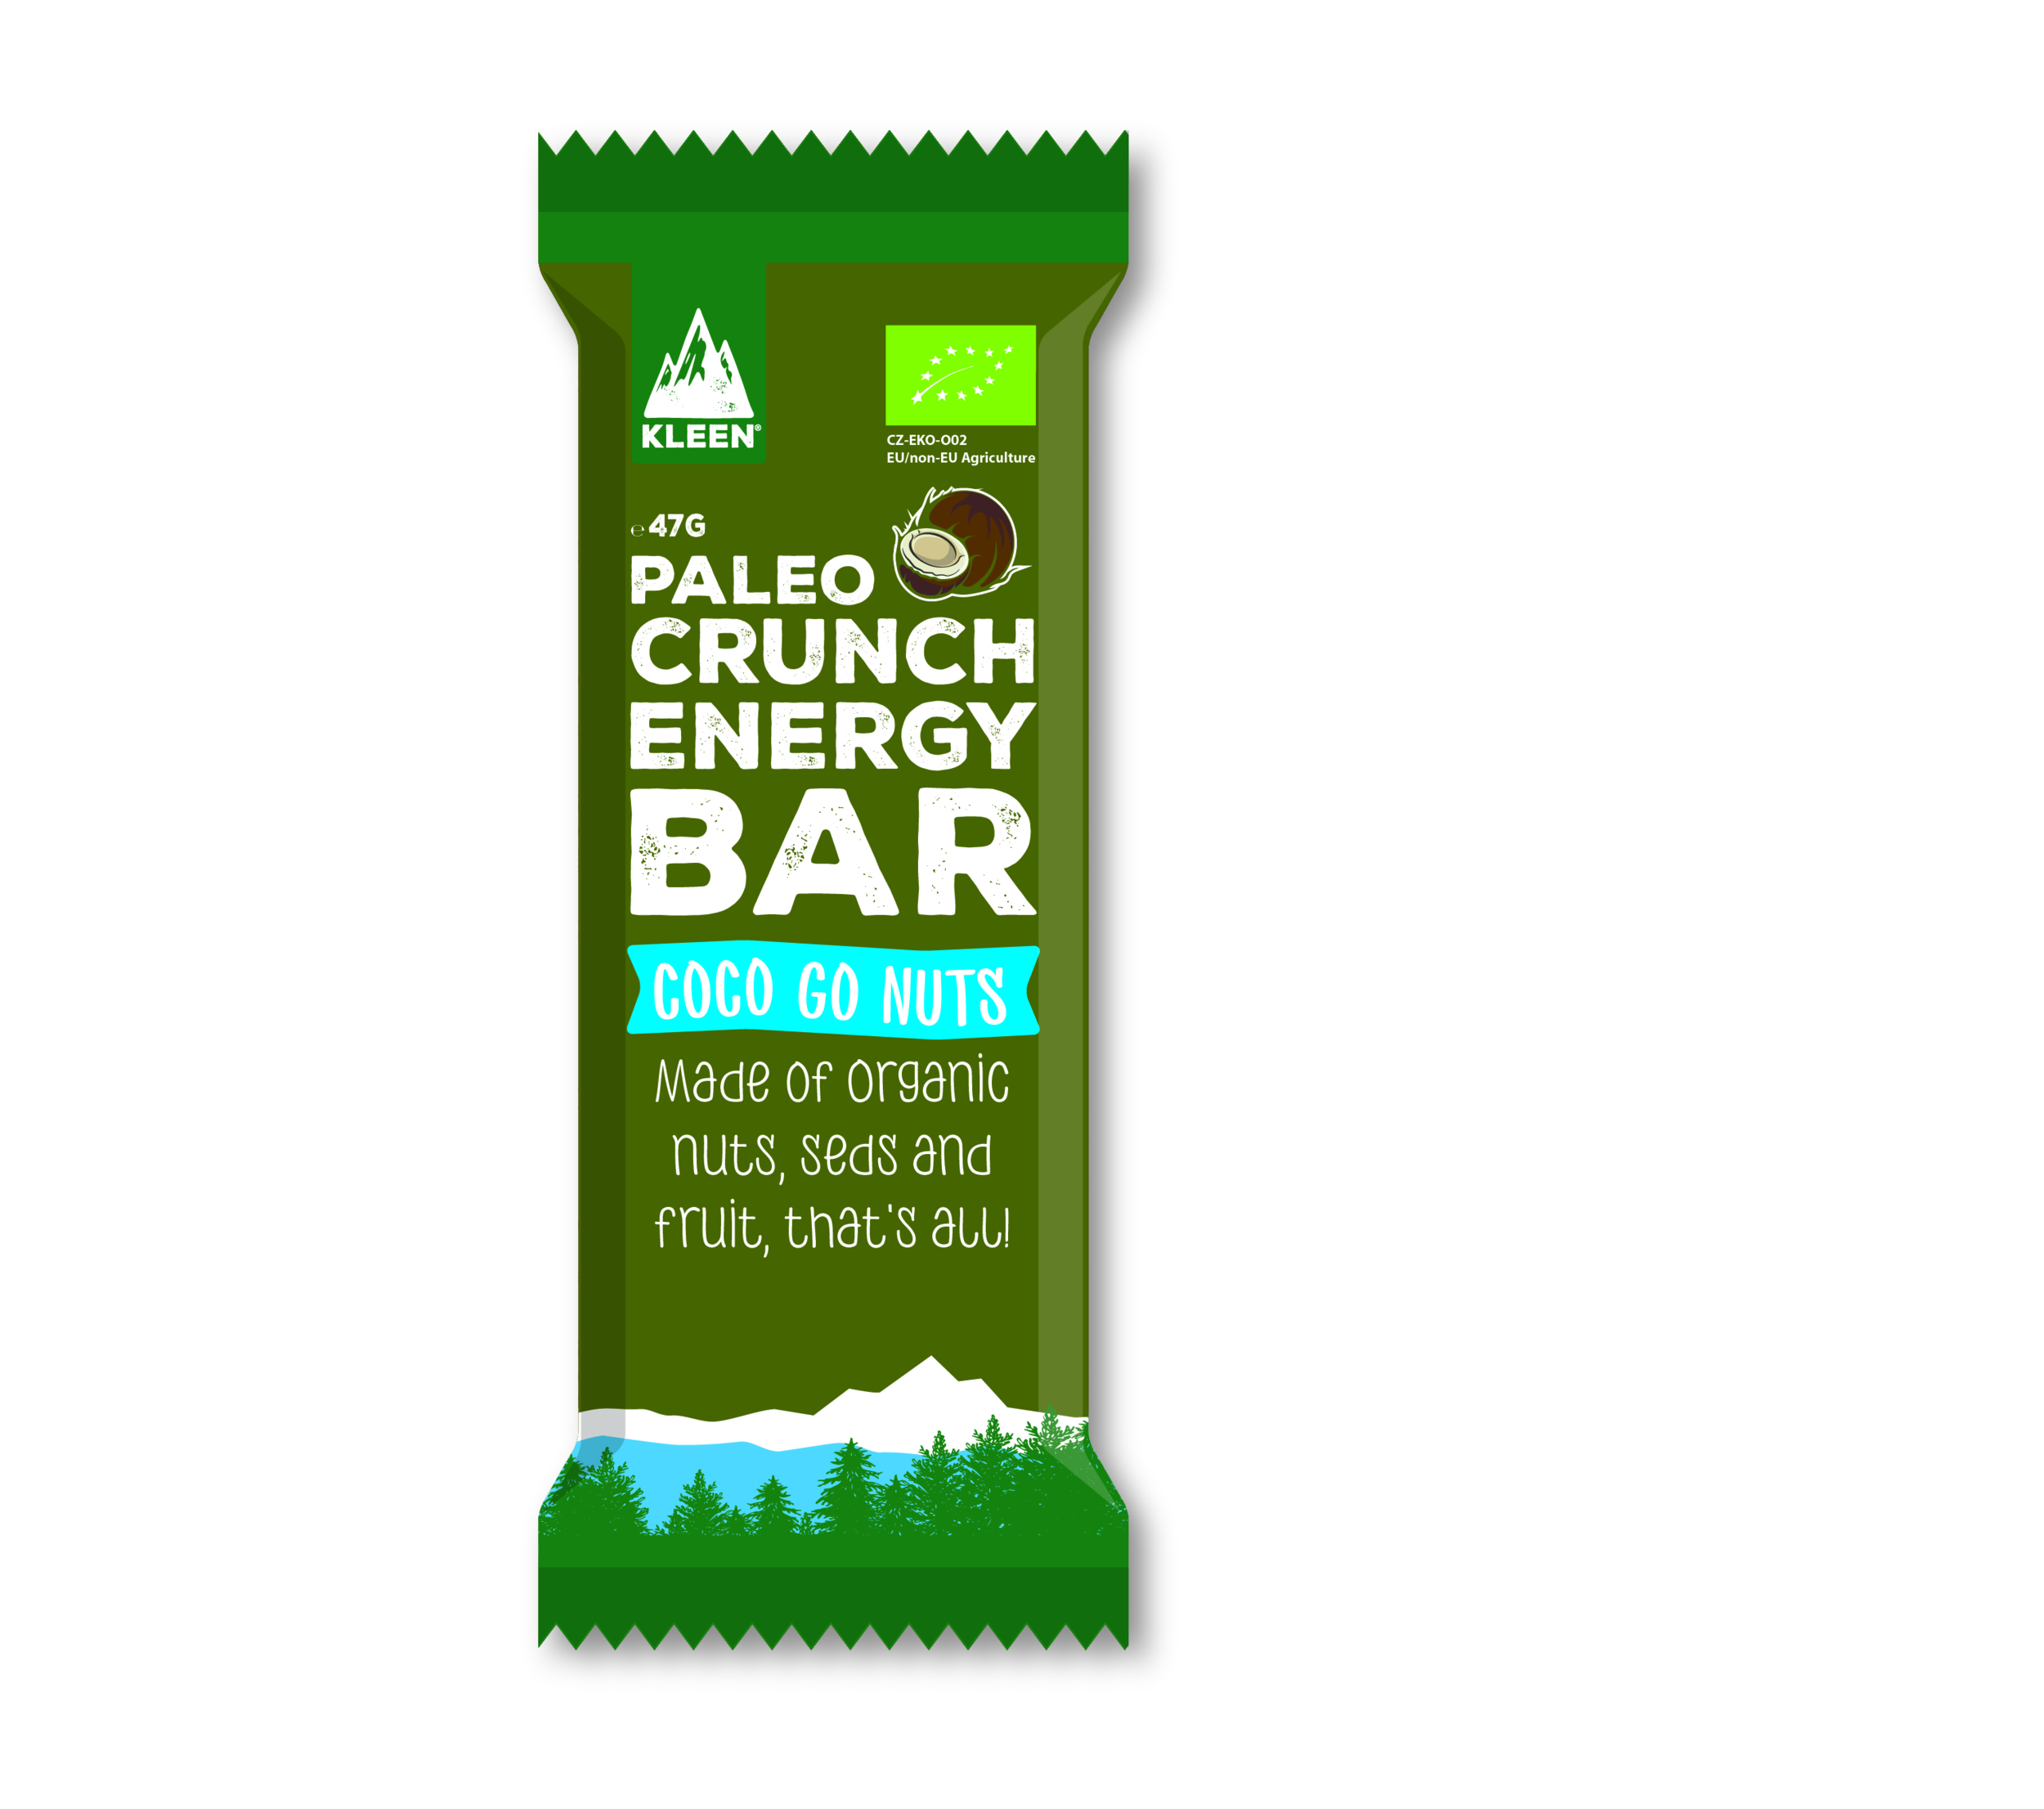 Barre Paléo Crunch ENERGY -Coco- 47g